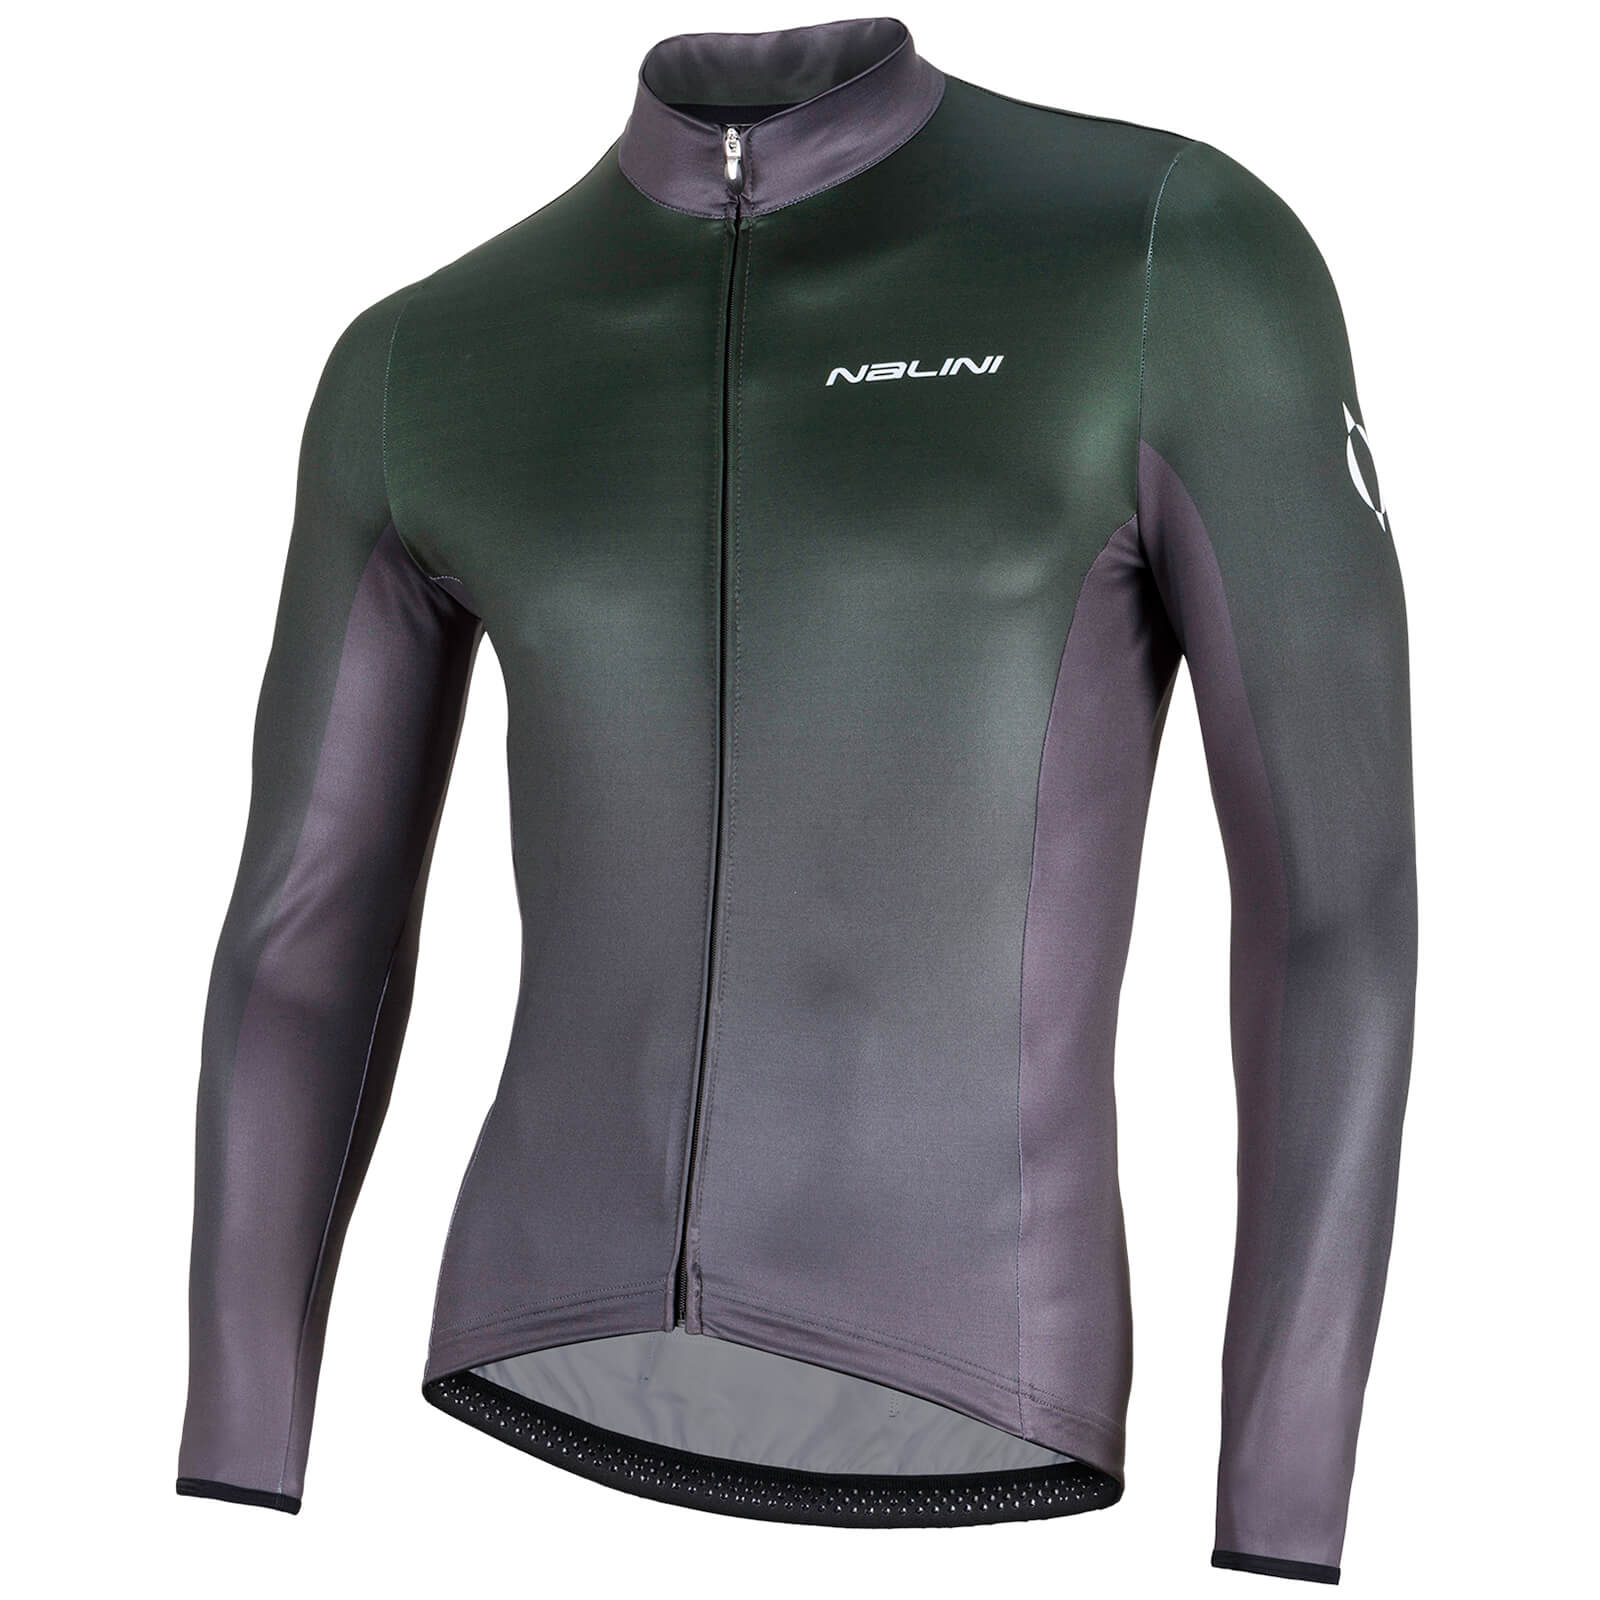 Nalini Mizar Long Sleeve Jersey - Green/Black